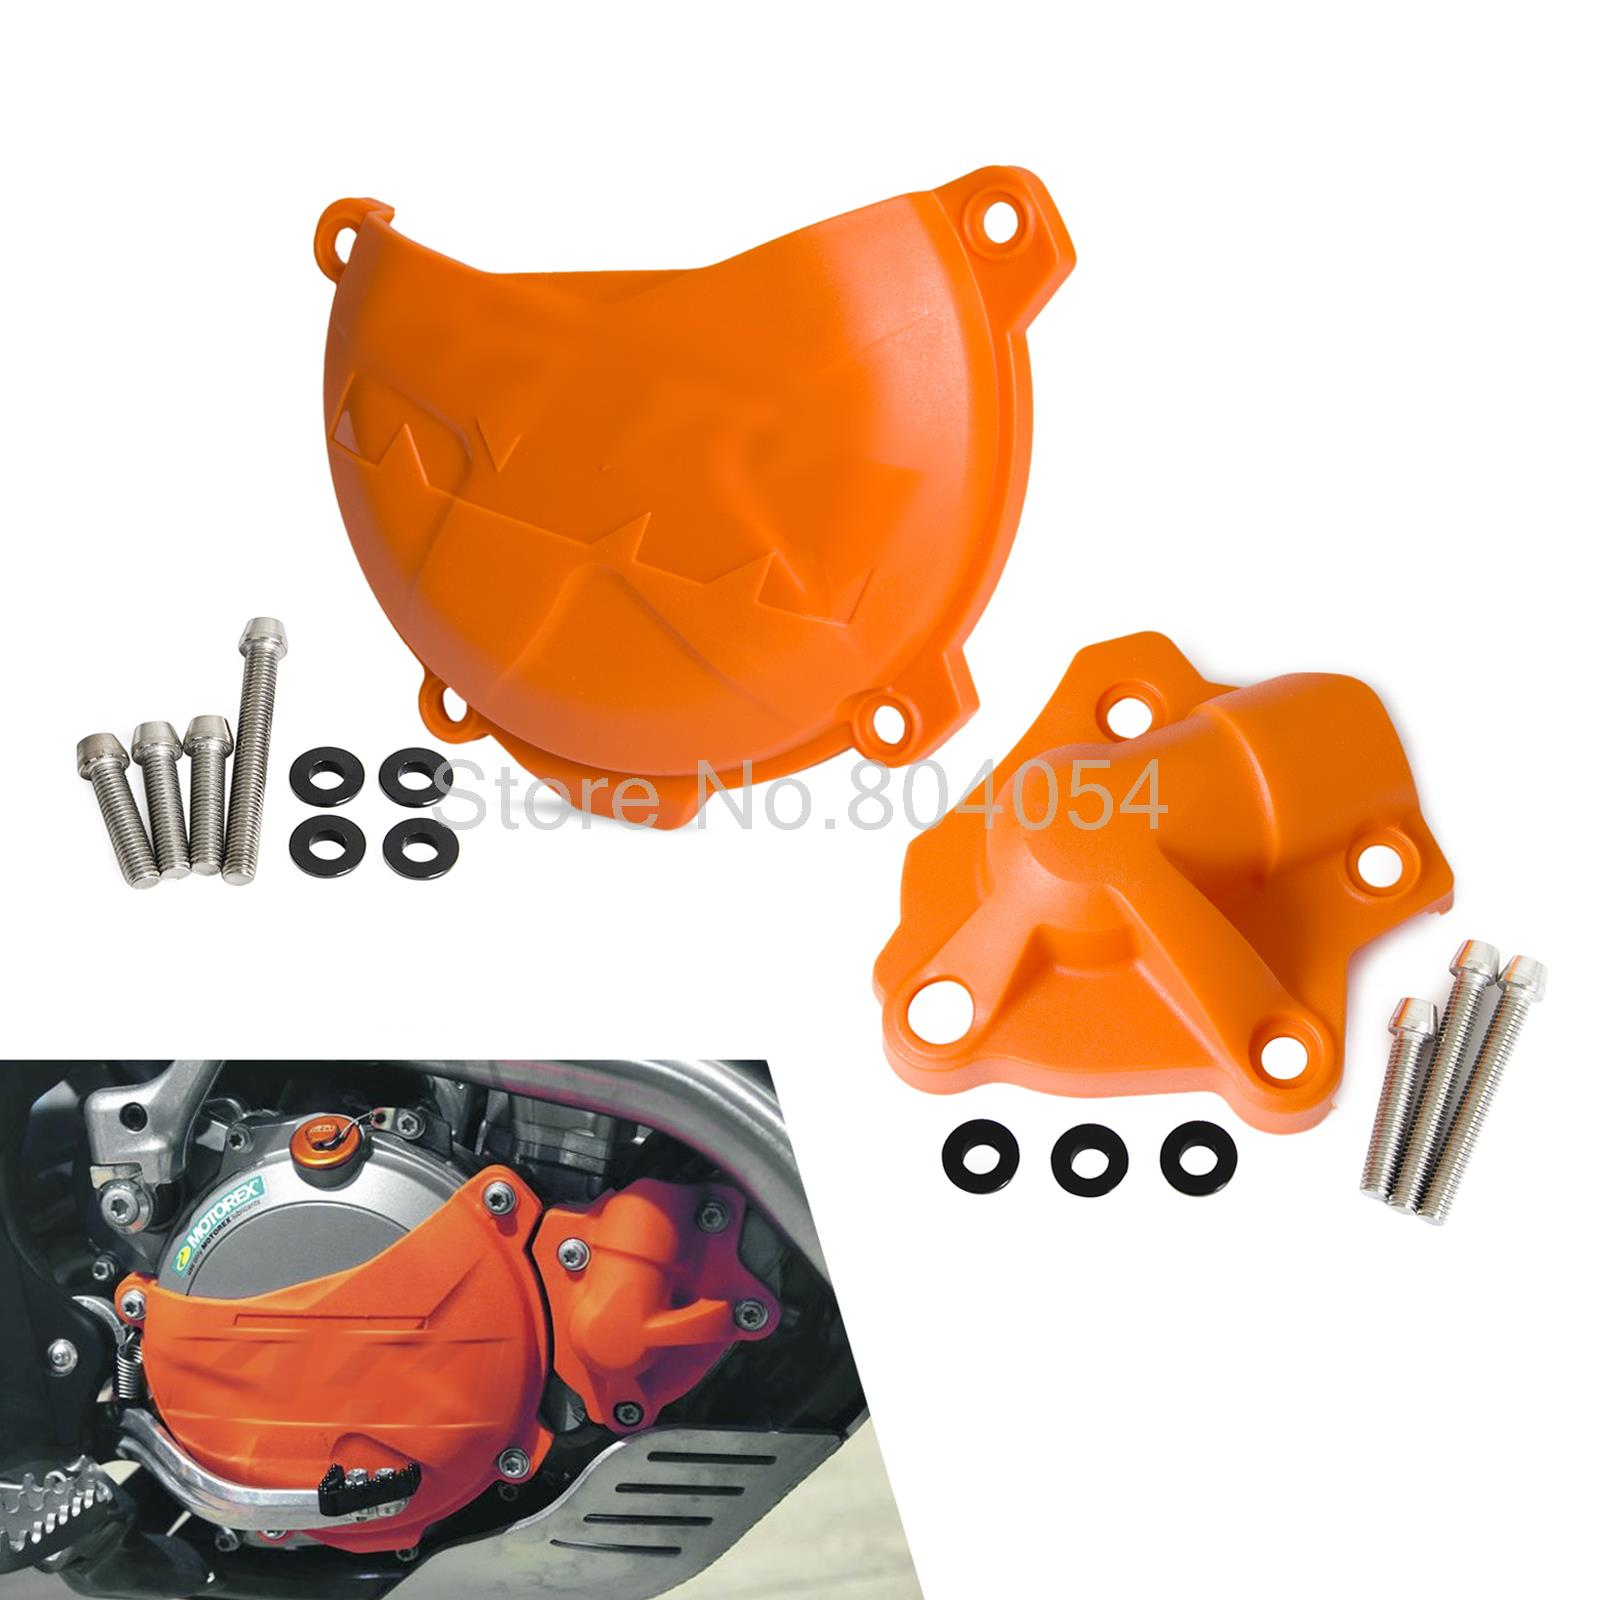 ФОТО Clutch Cover Protection Cover Water Pump Cover Protector for KTM 250 XC-F 2014-2015